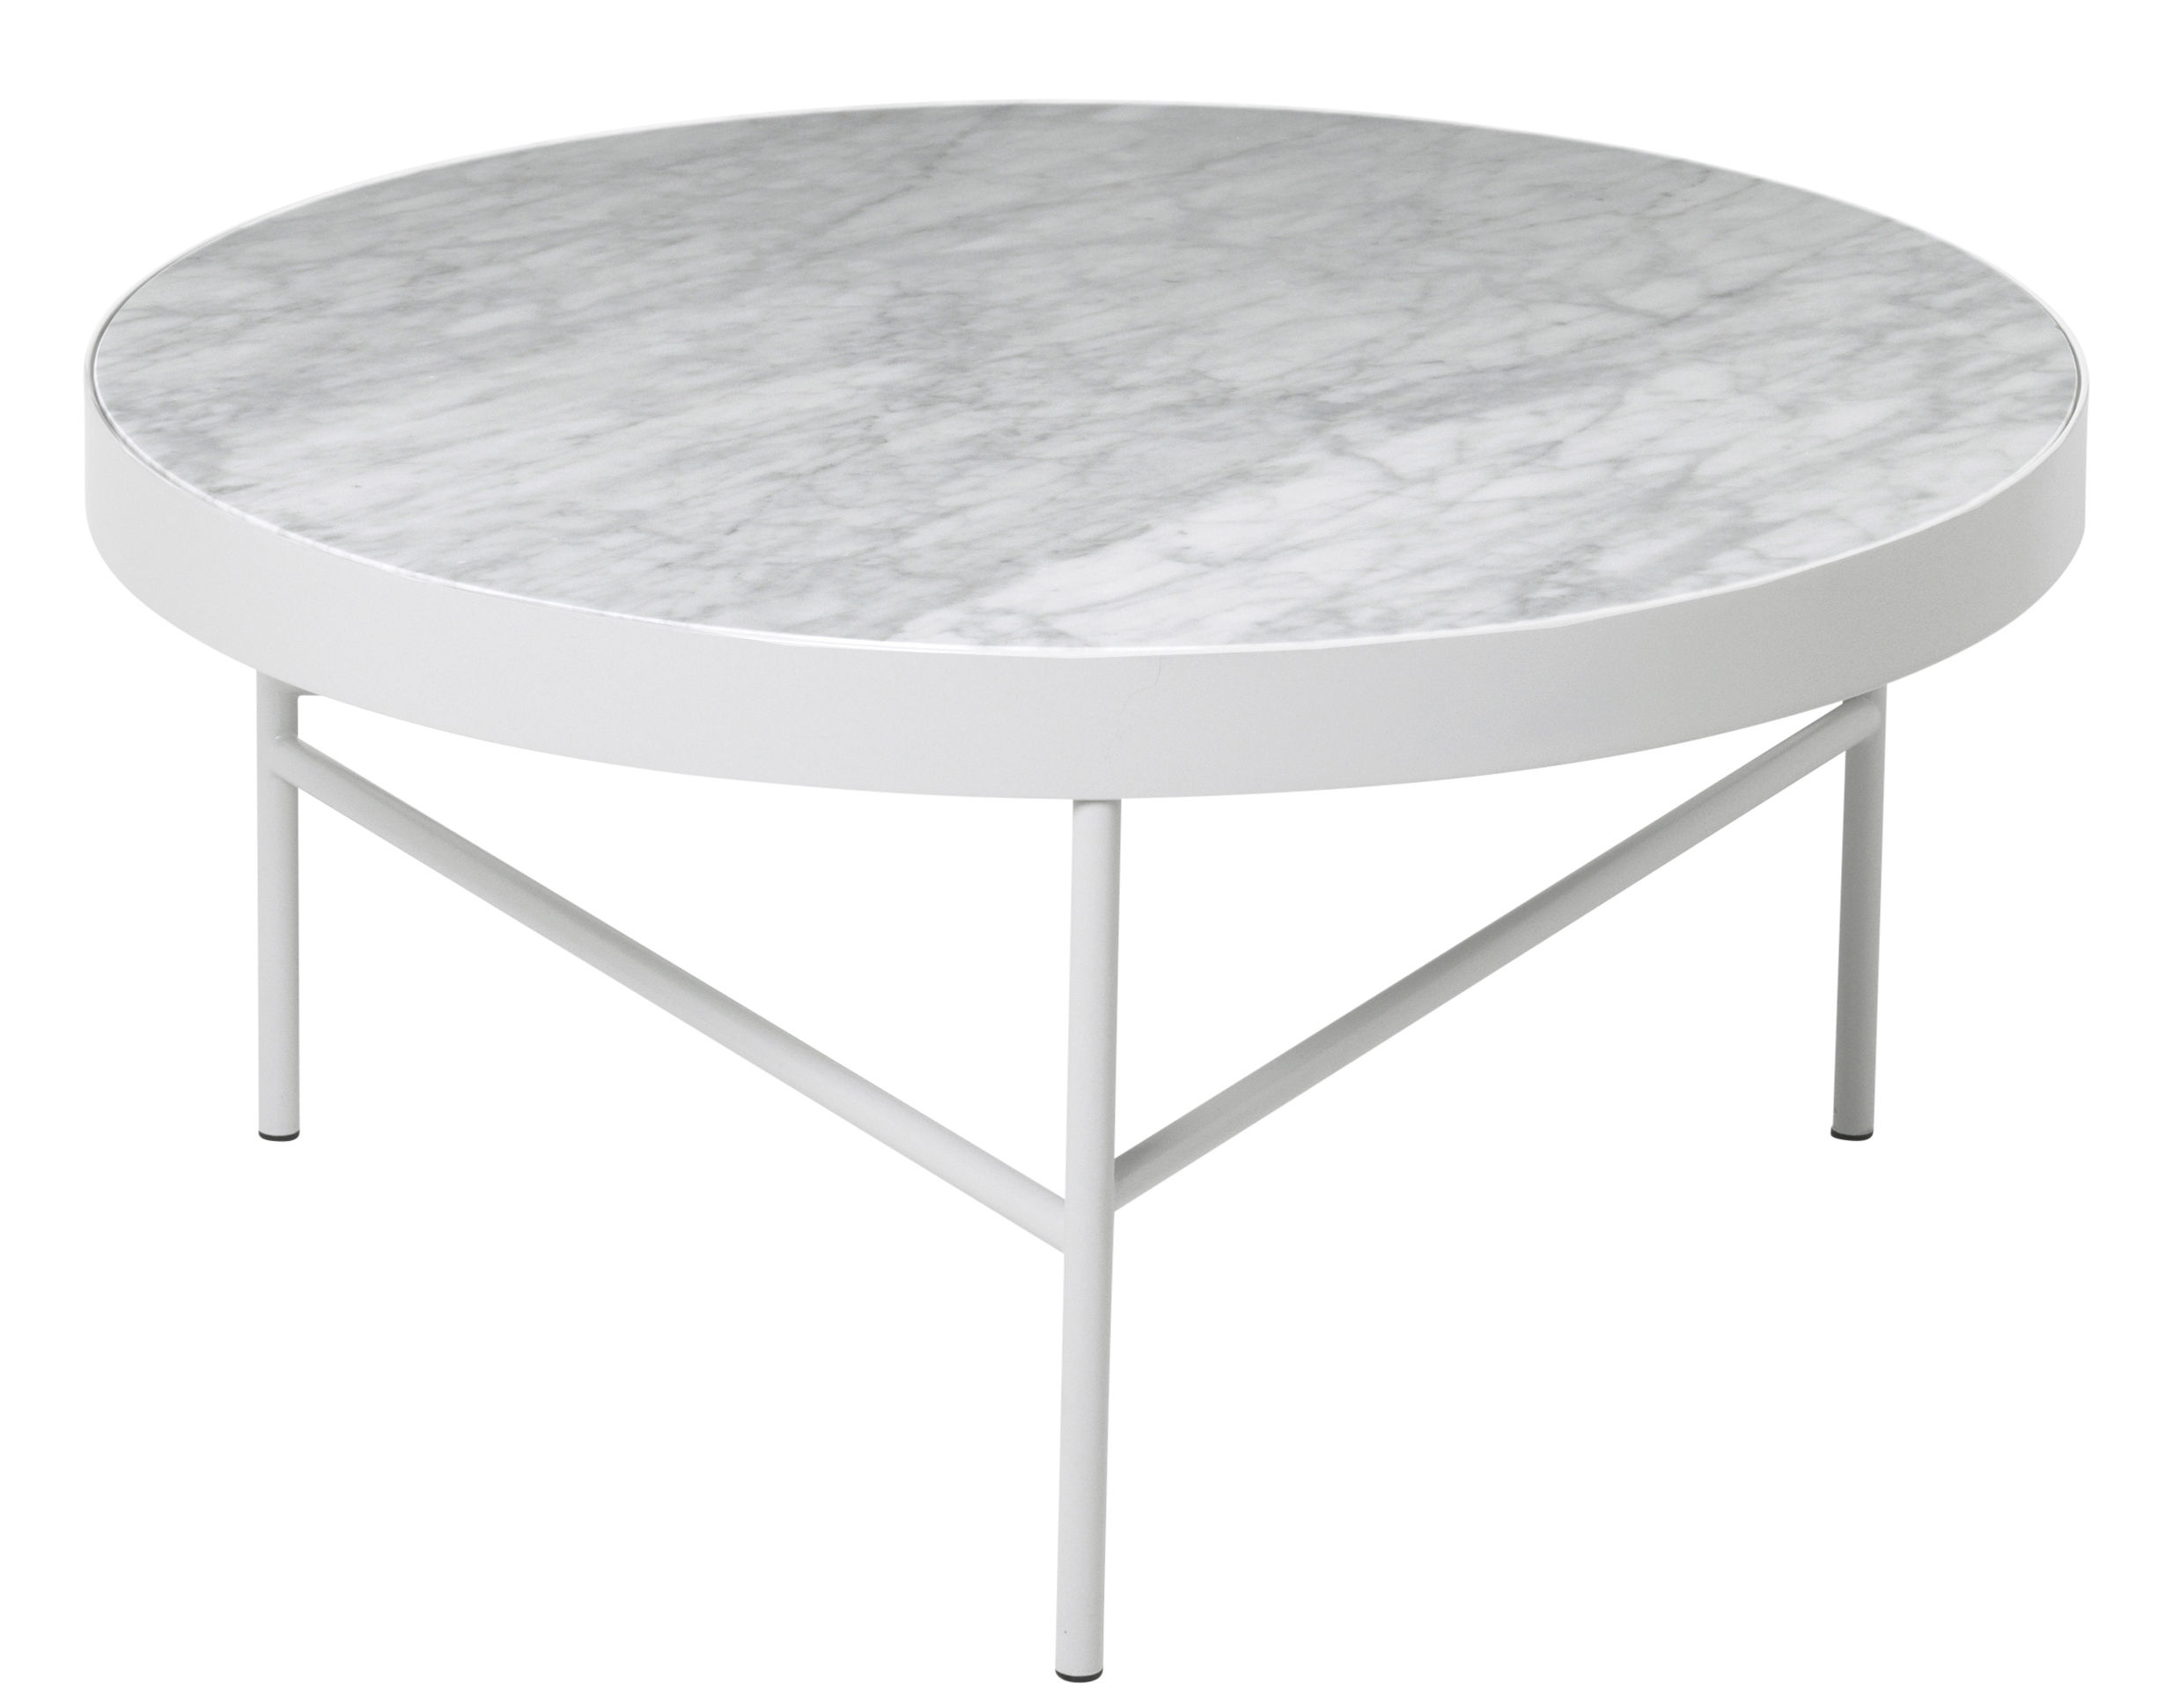 Marble Couchtisch Gross O 70 5 X H 35 Cm Marmor Weiss